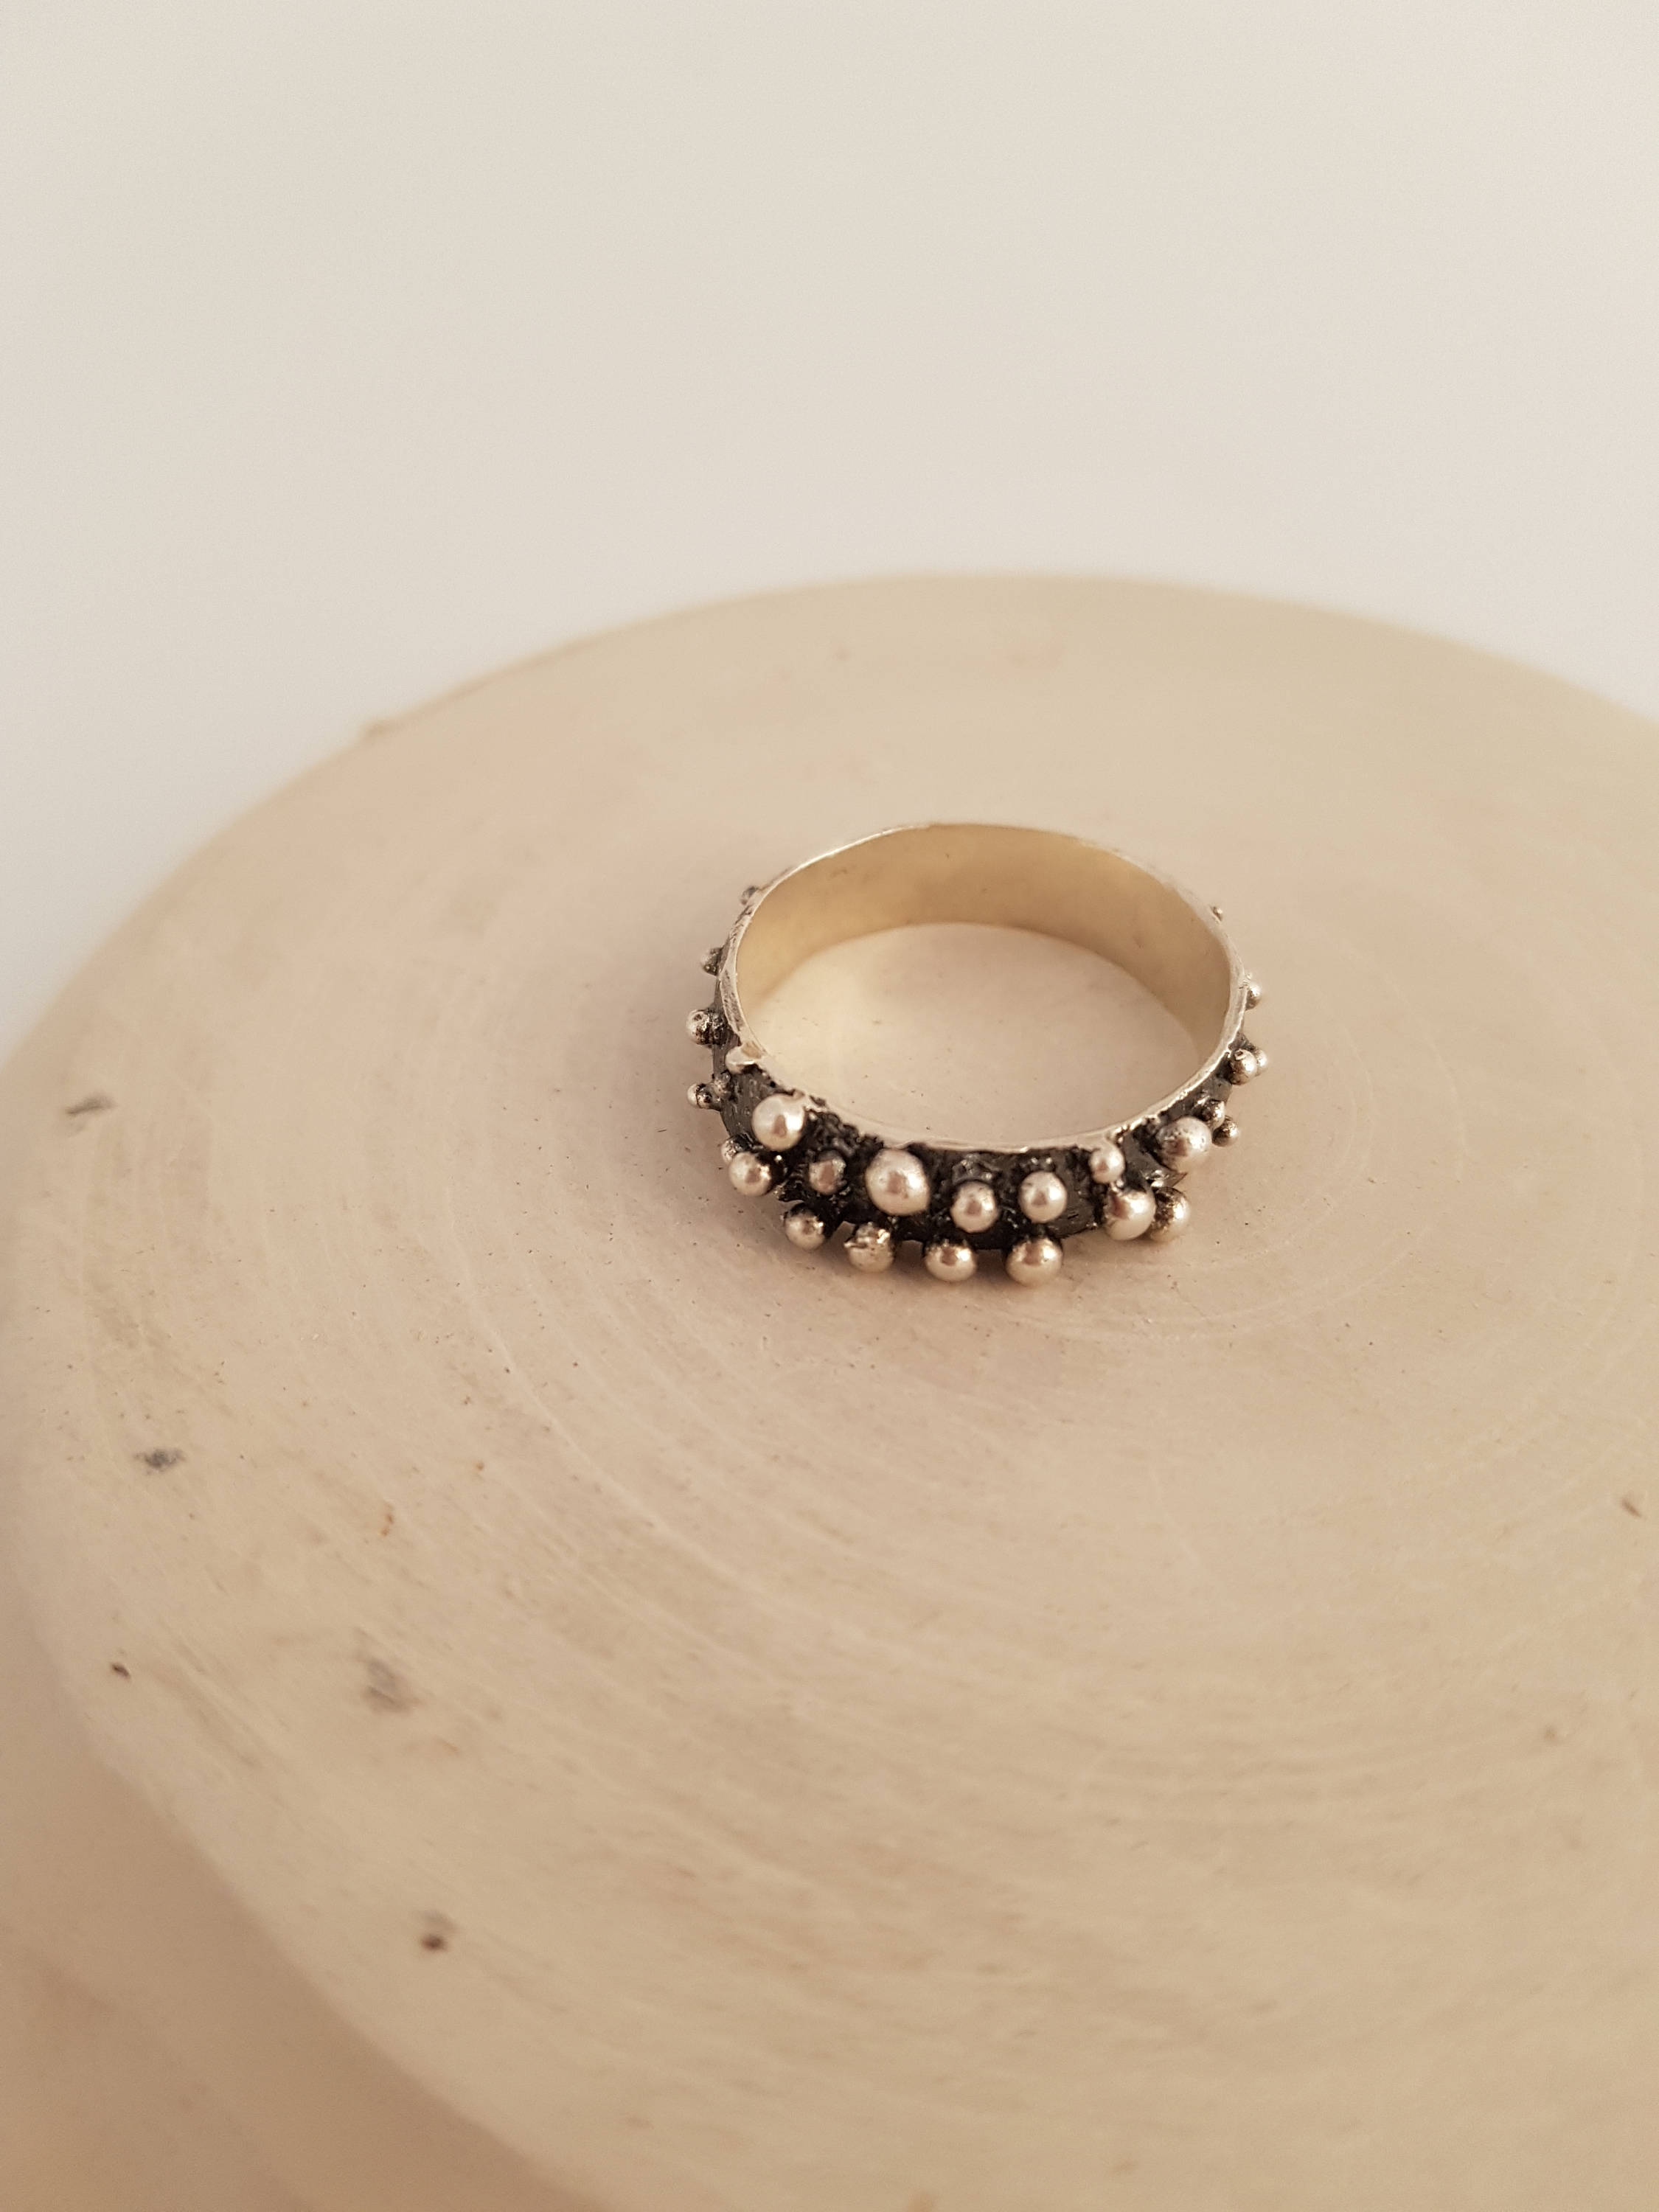 Bubbles ring in sterling silver with oxidized details. Bohemian and contemporary ring handcrafted.